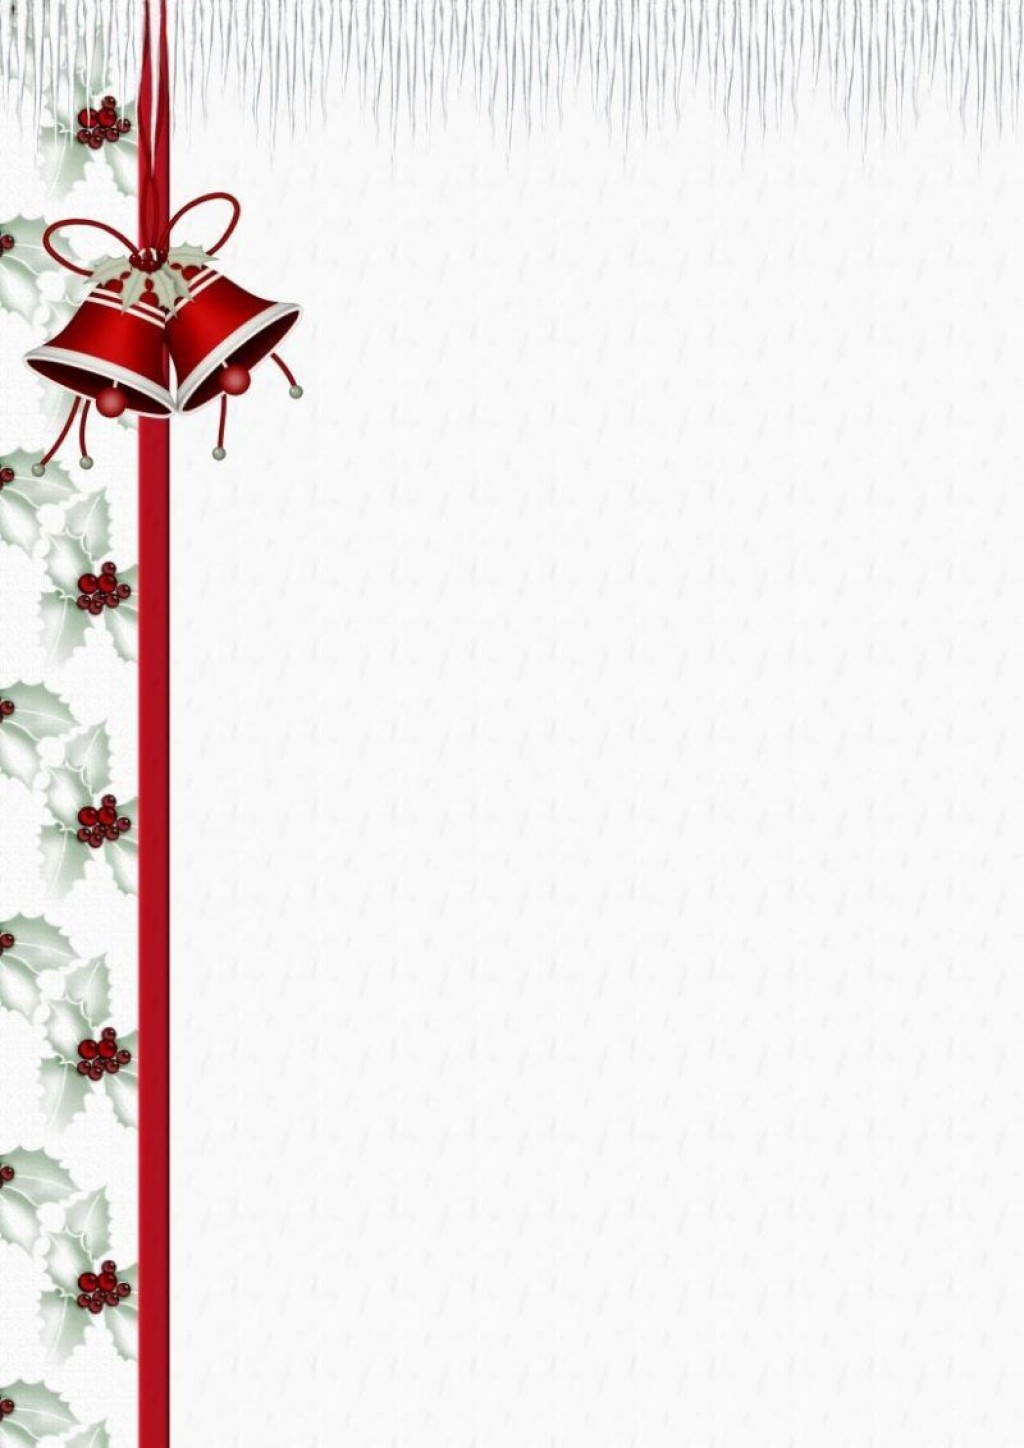 009 Formidable Christma Stationery Template Word Free Concept  Religiou For DownloadableLarge